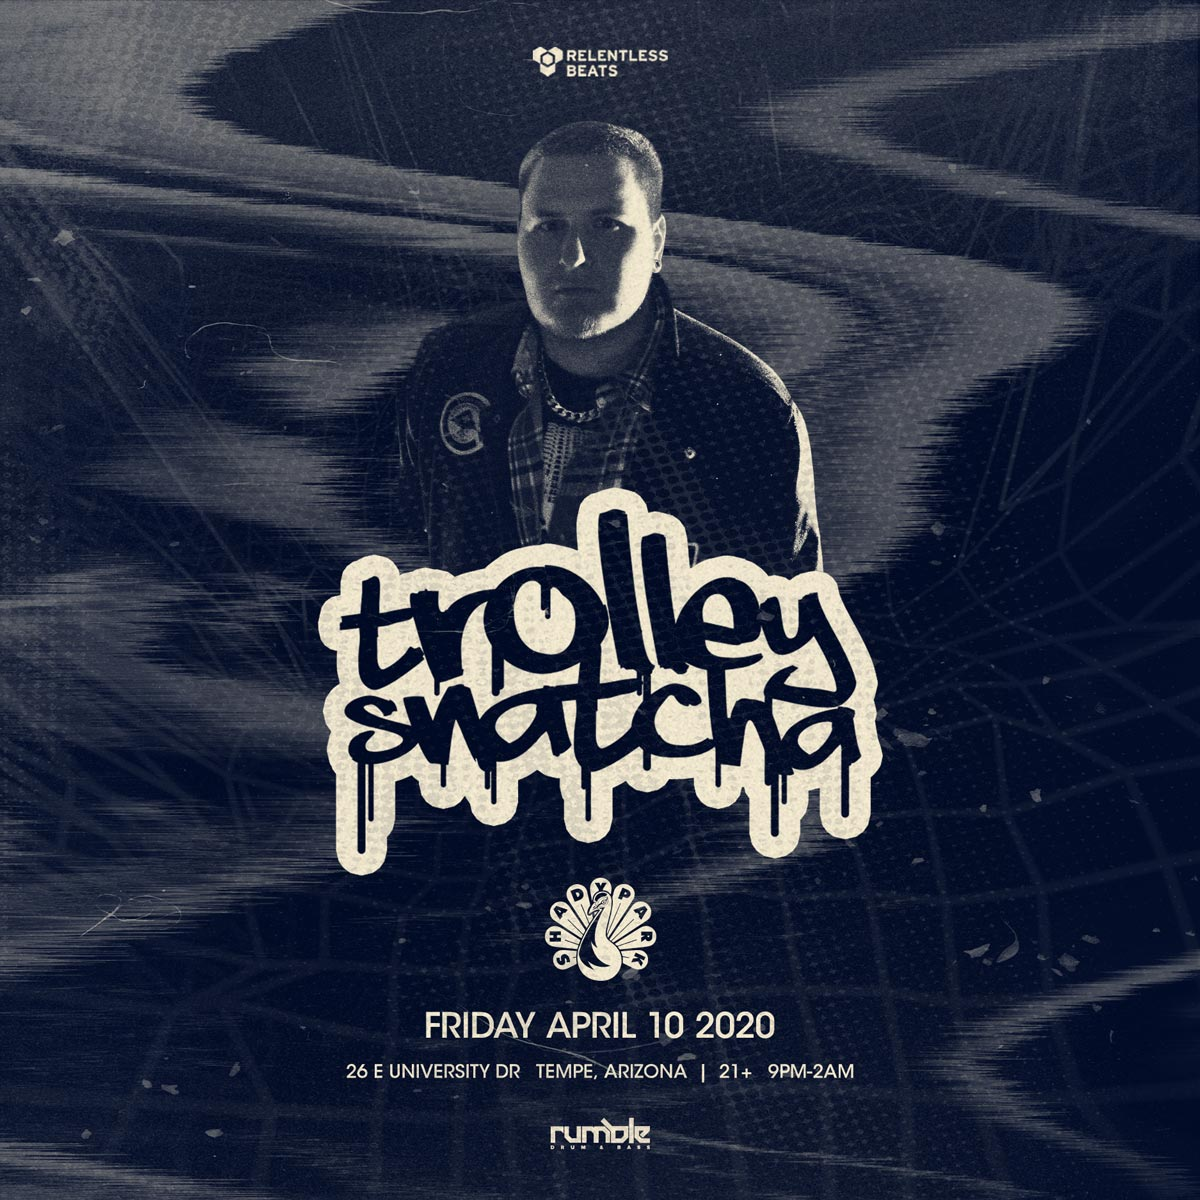 Flyer for Trolley Snatcha